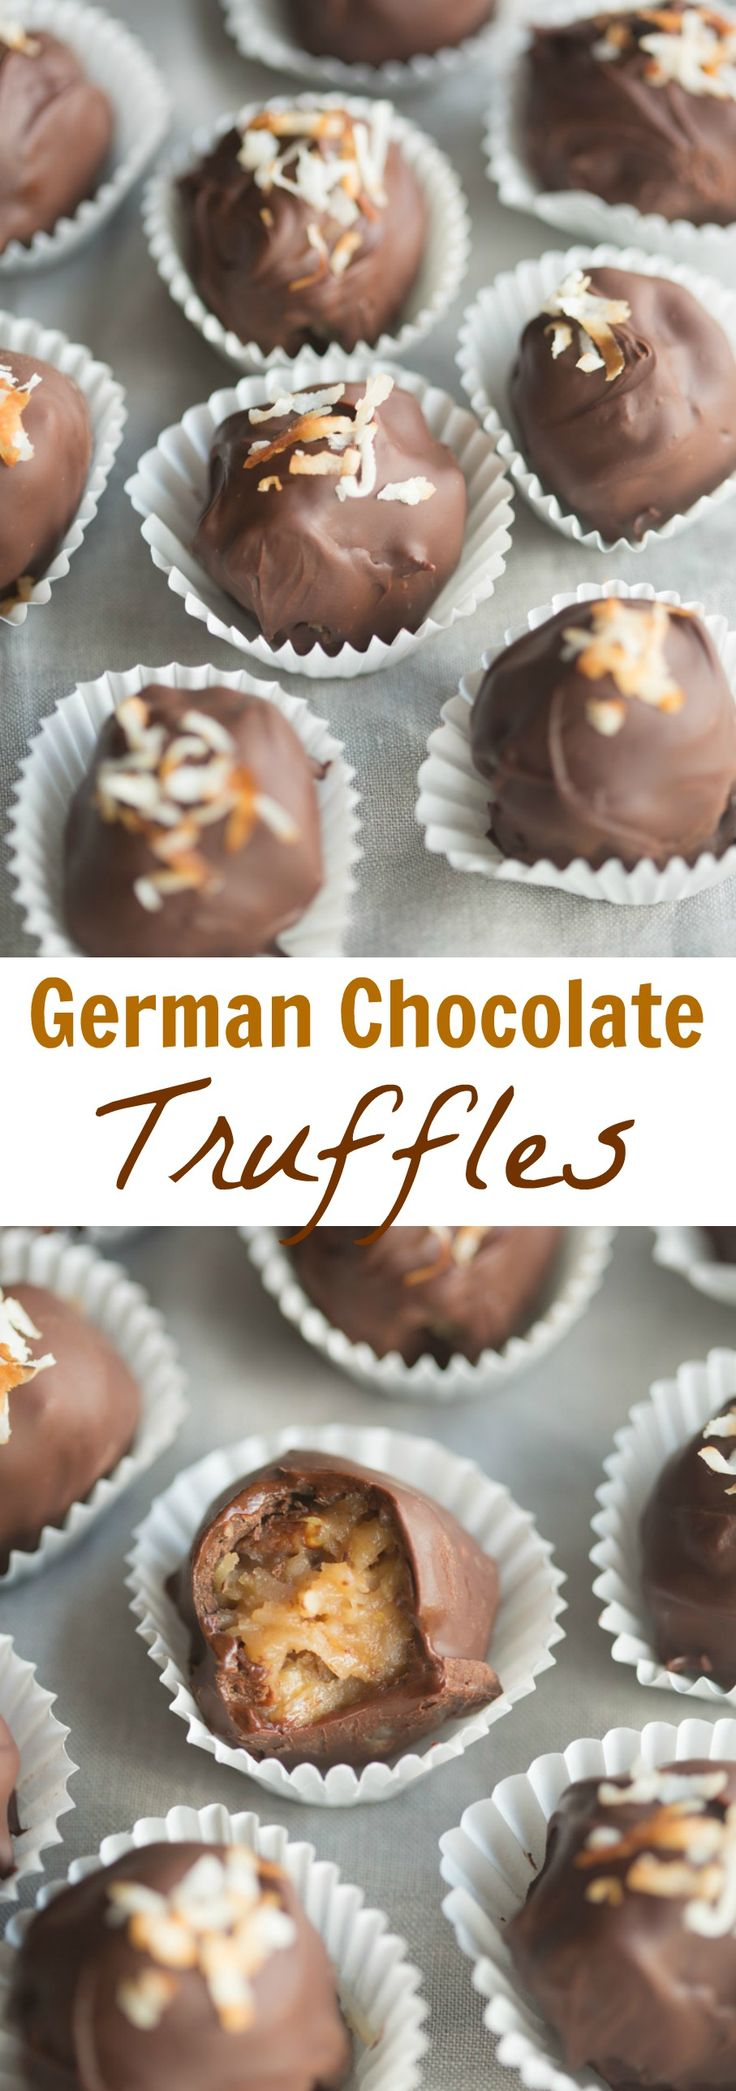 German Chocolate Truffles - coconut pecan german chocolate filling rolled into…                                                                                                                                                                                 More